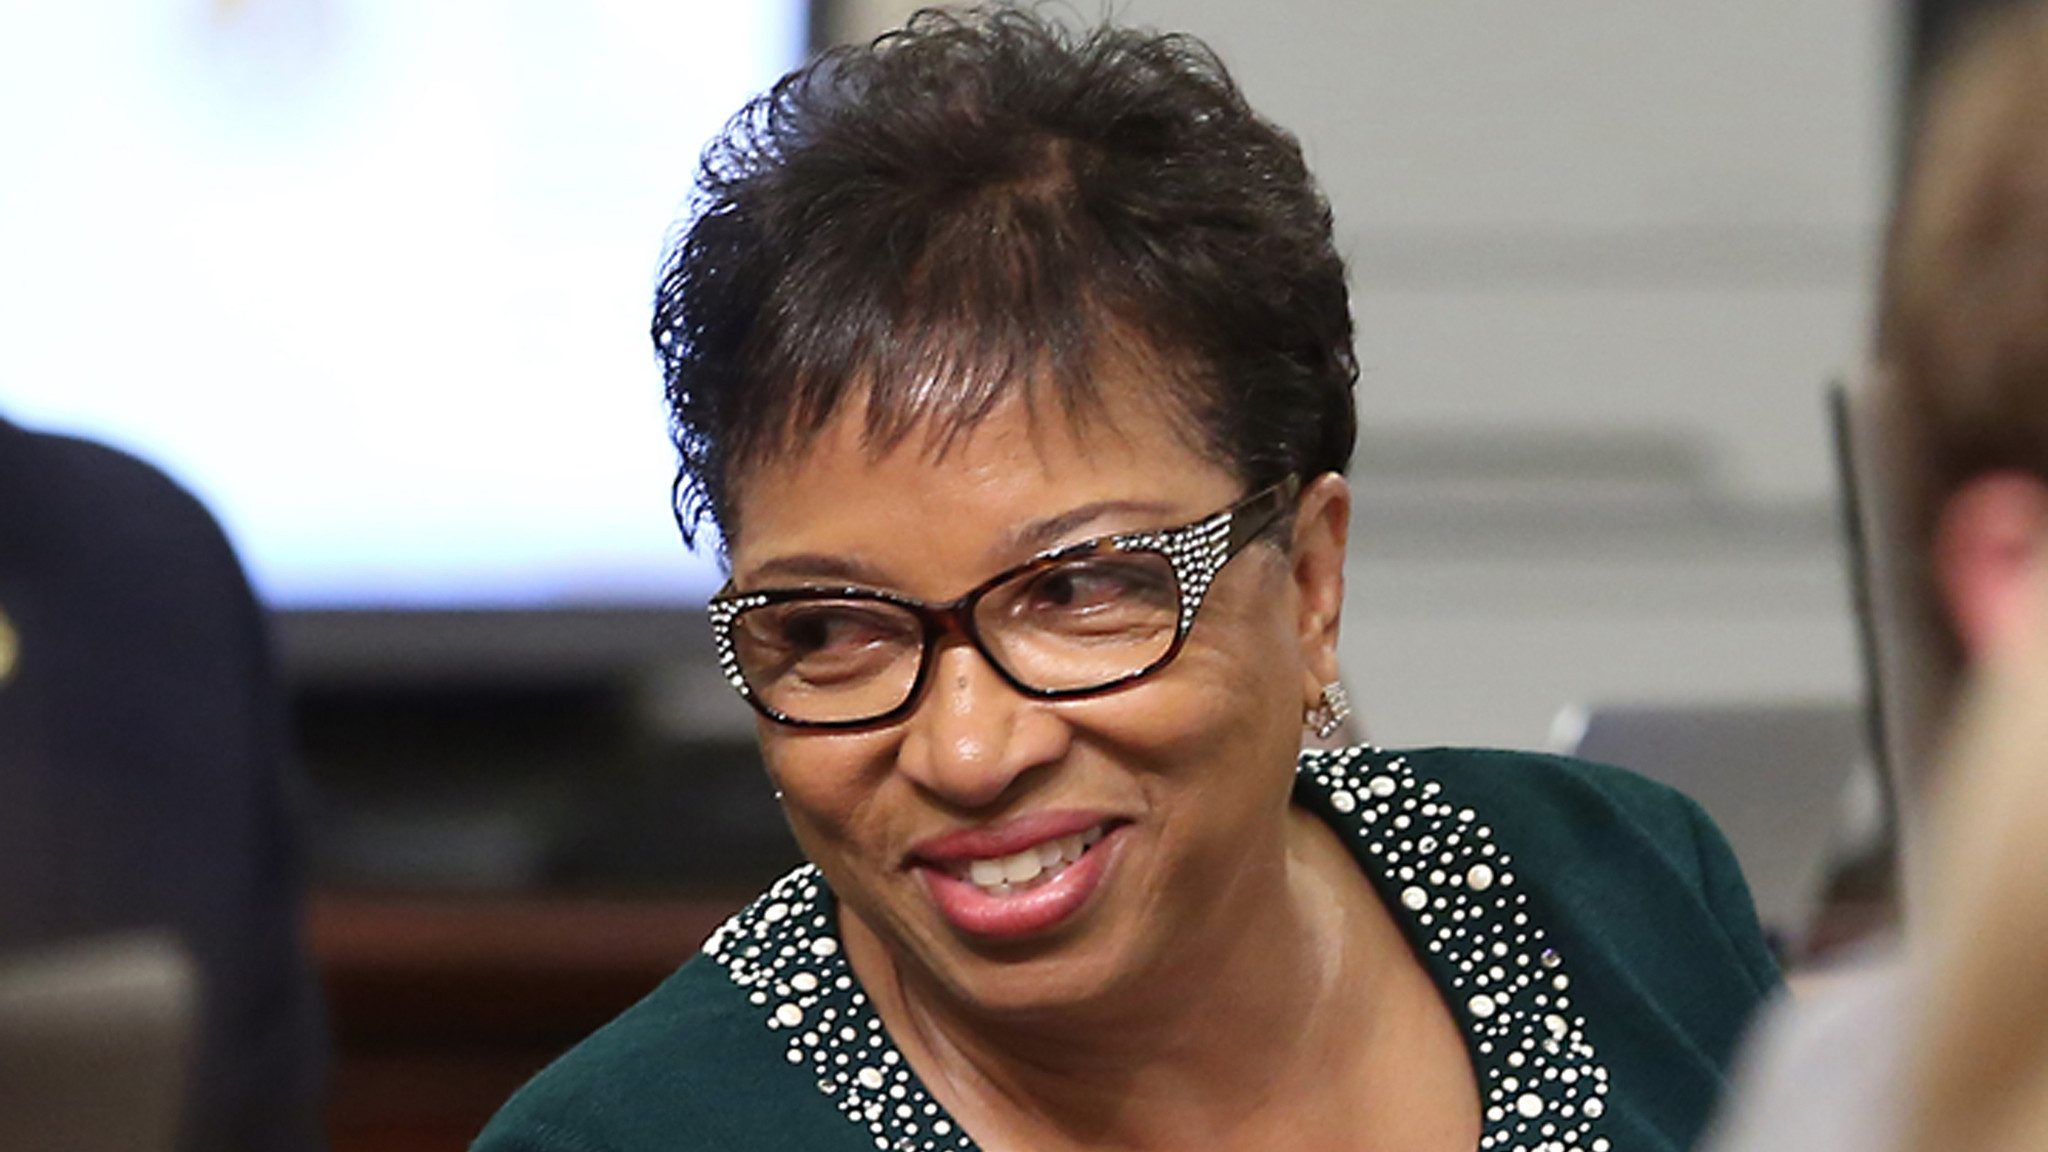 Assemblywoman Cheryl Brown of San Bernardino. (Associated Press)